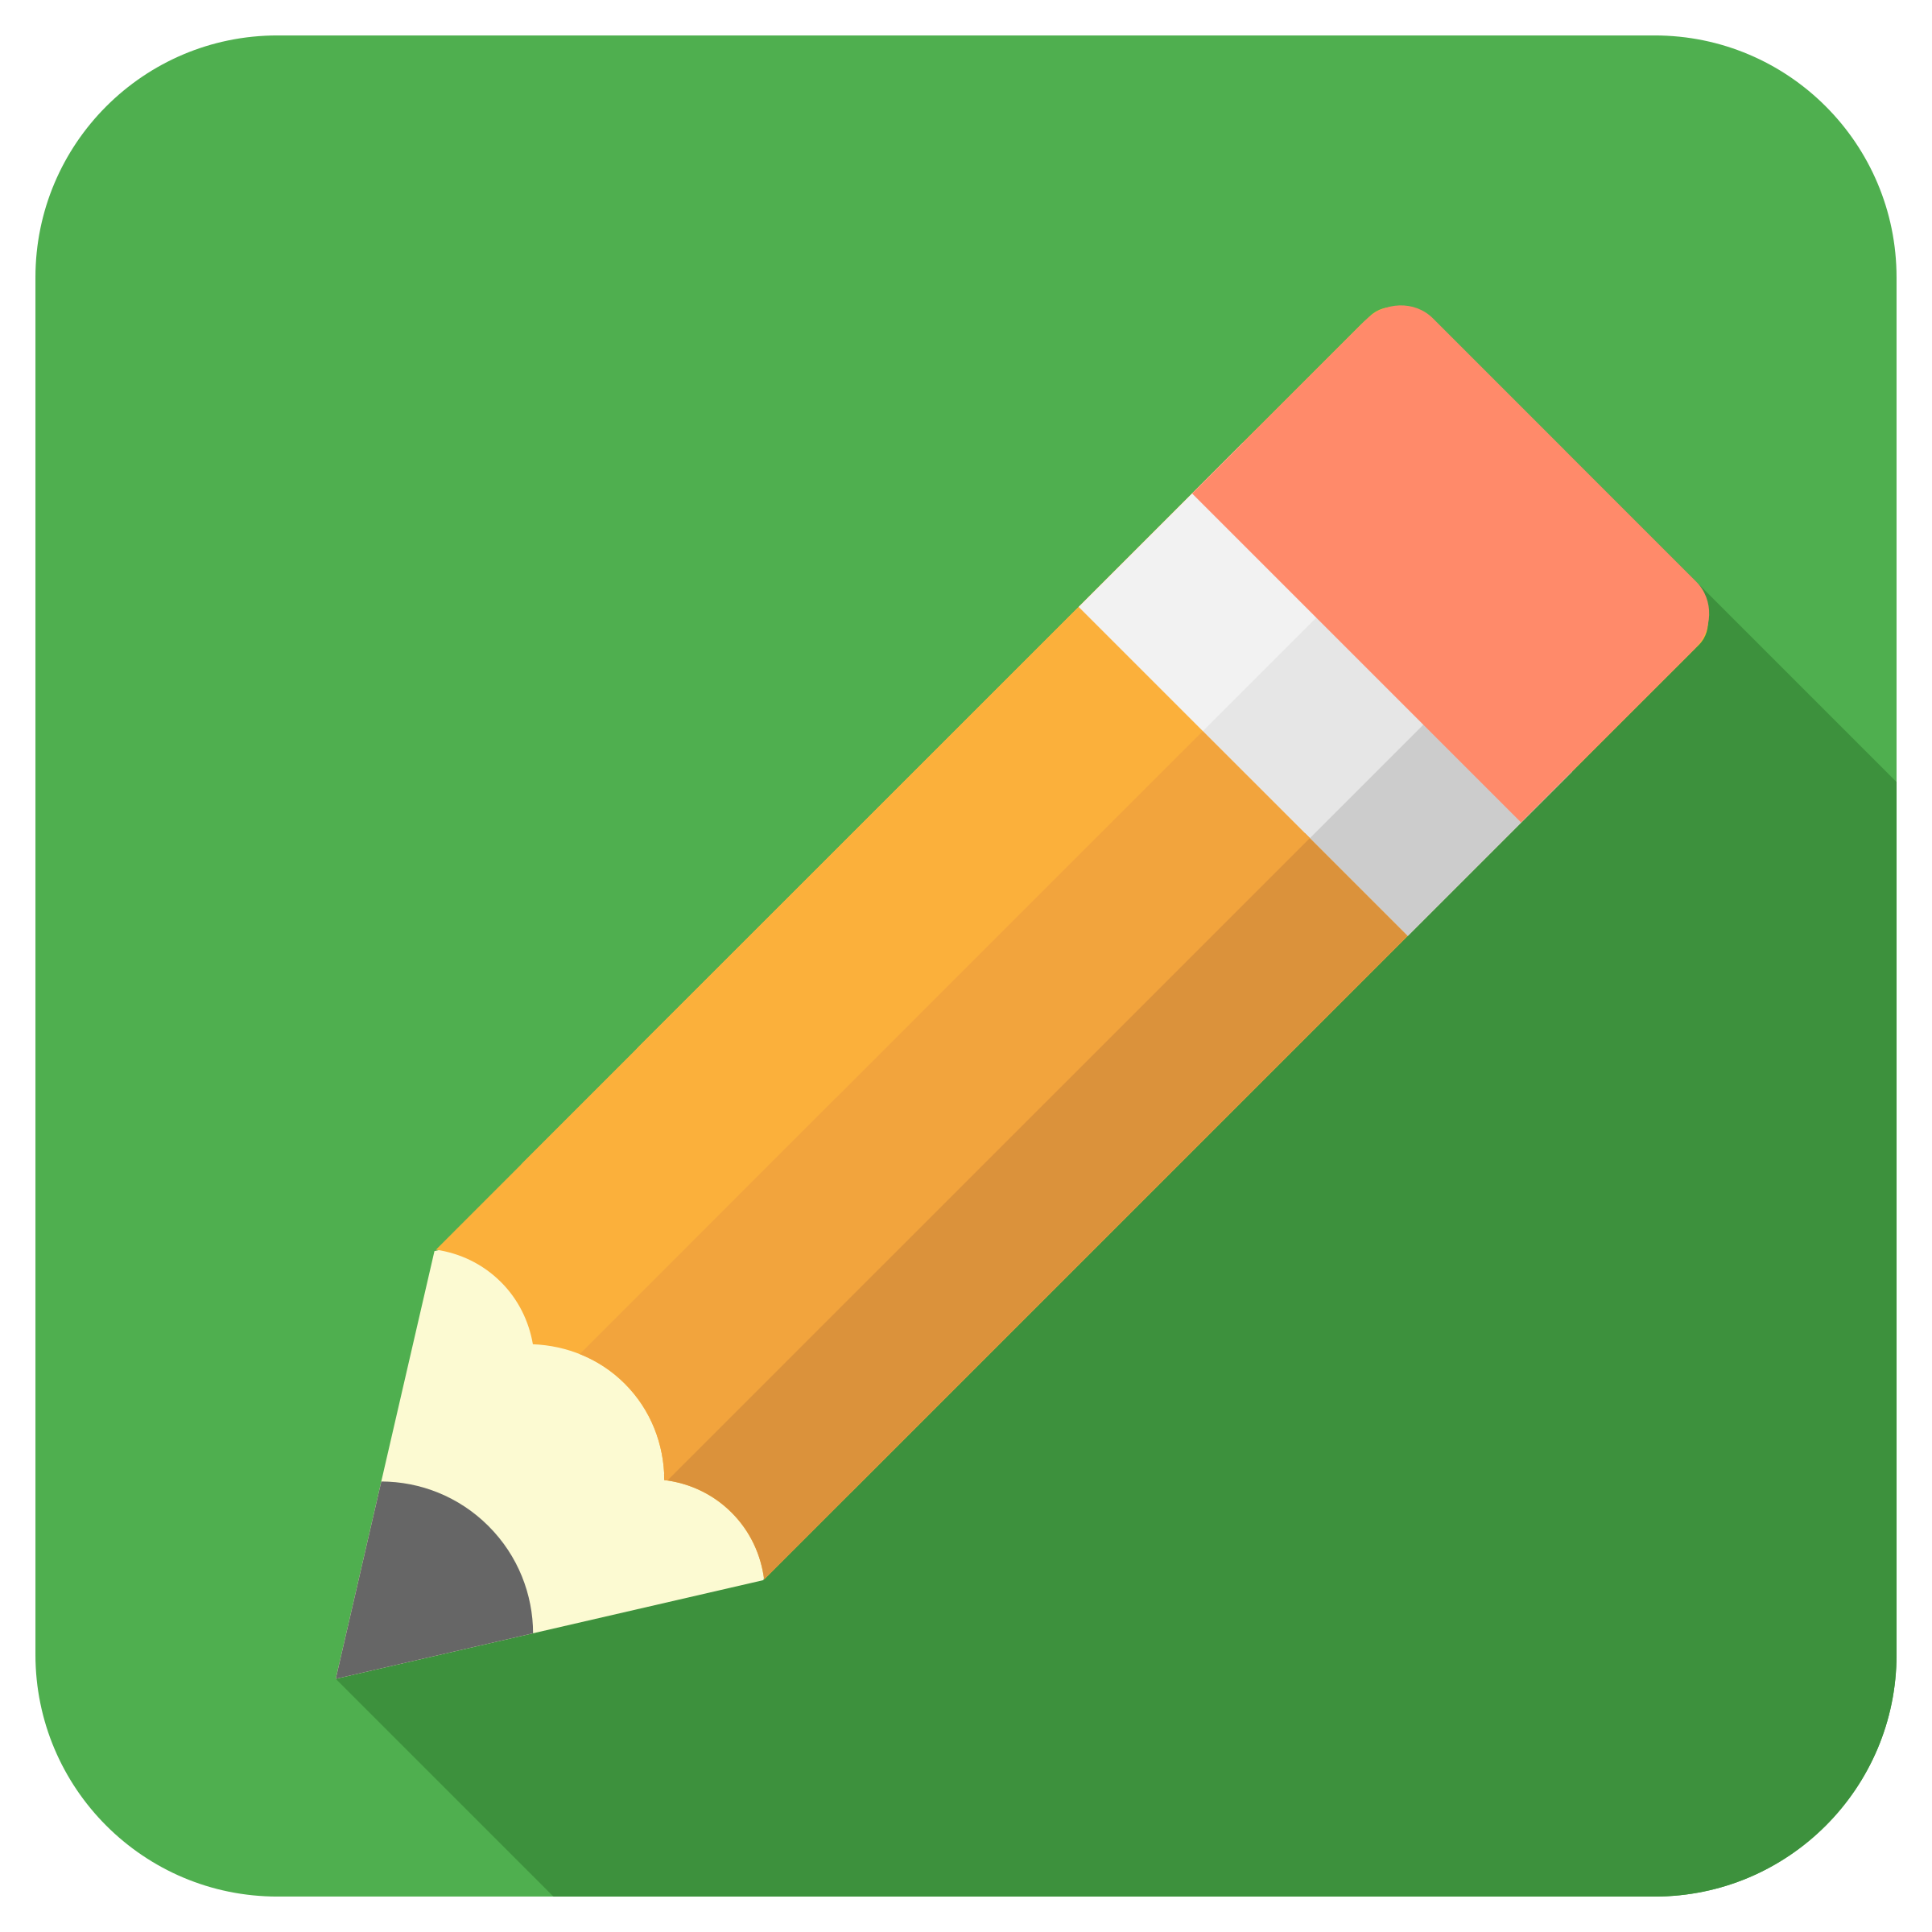 Clipart - Pencil icon